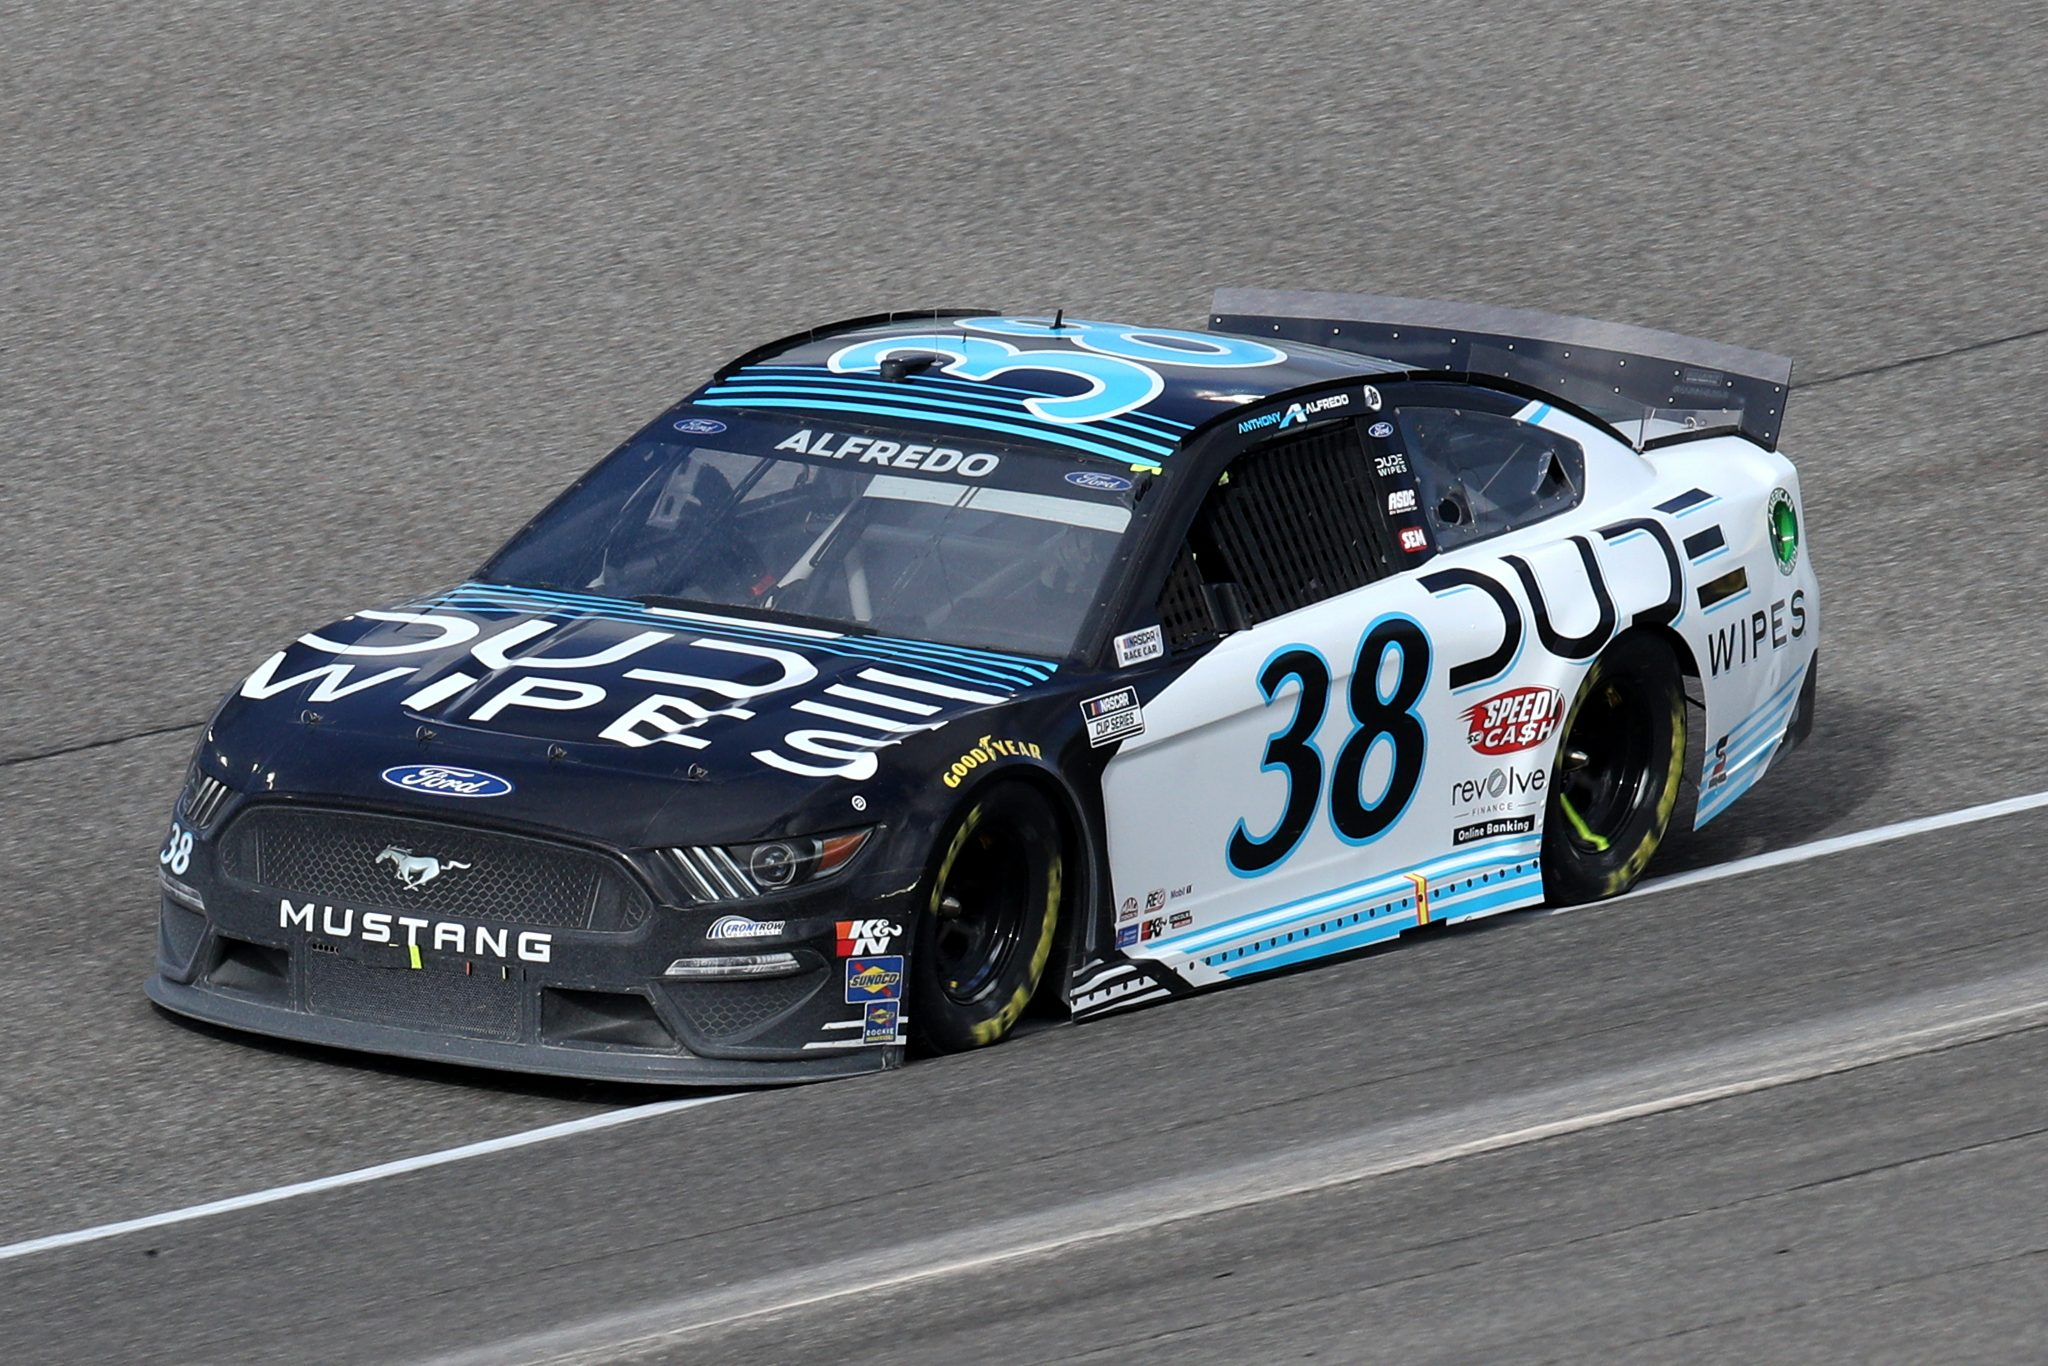 HOMESTEAD, FLORIDA - FEBRUARY 28: Anthony Alfredo, driver of the #38 Dude Wipes Ford, drives during the NASCAR Cup Series Dixie Vodka 400 at Homestead-Miami Speedway on February 28, 2021 in Homestead, Florida. (Photo by Sean Gardner/Getty Images) | Getty Images